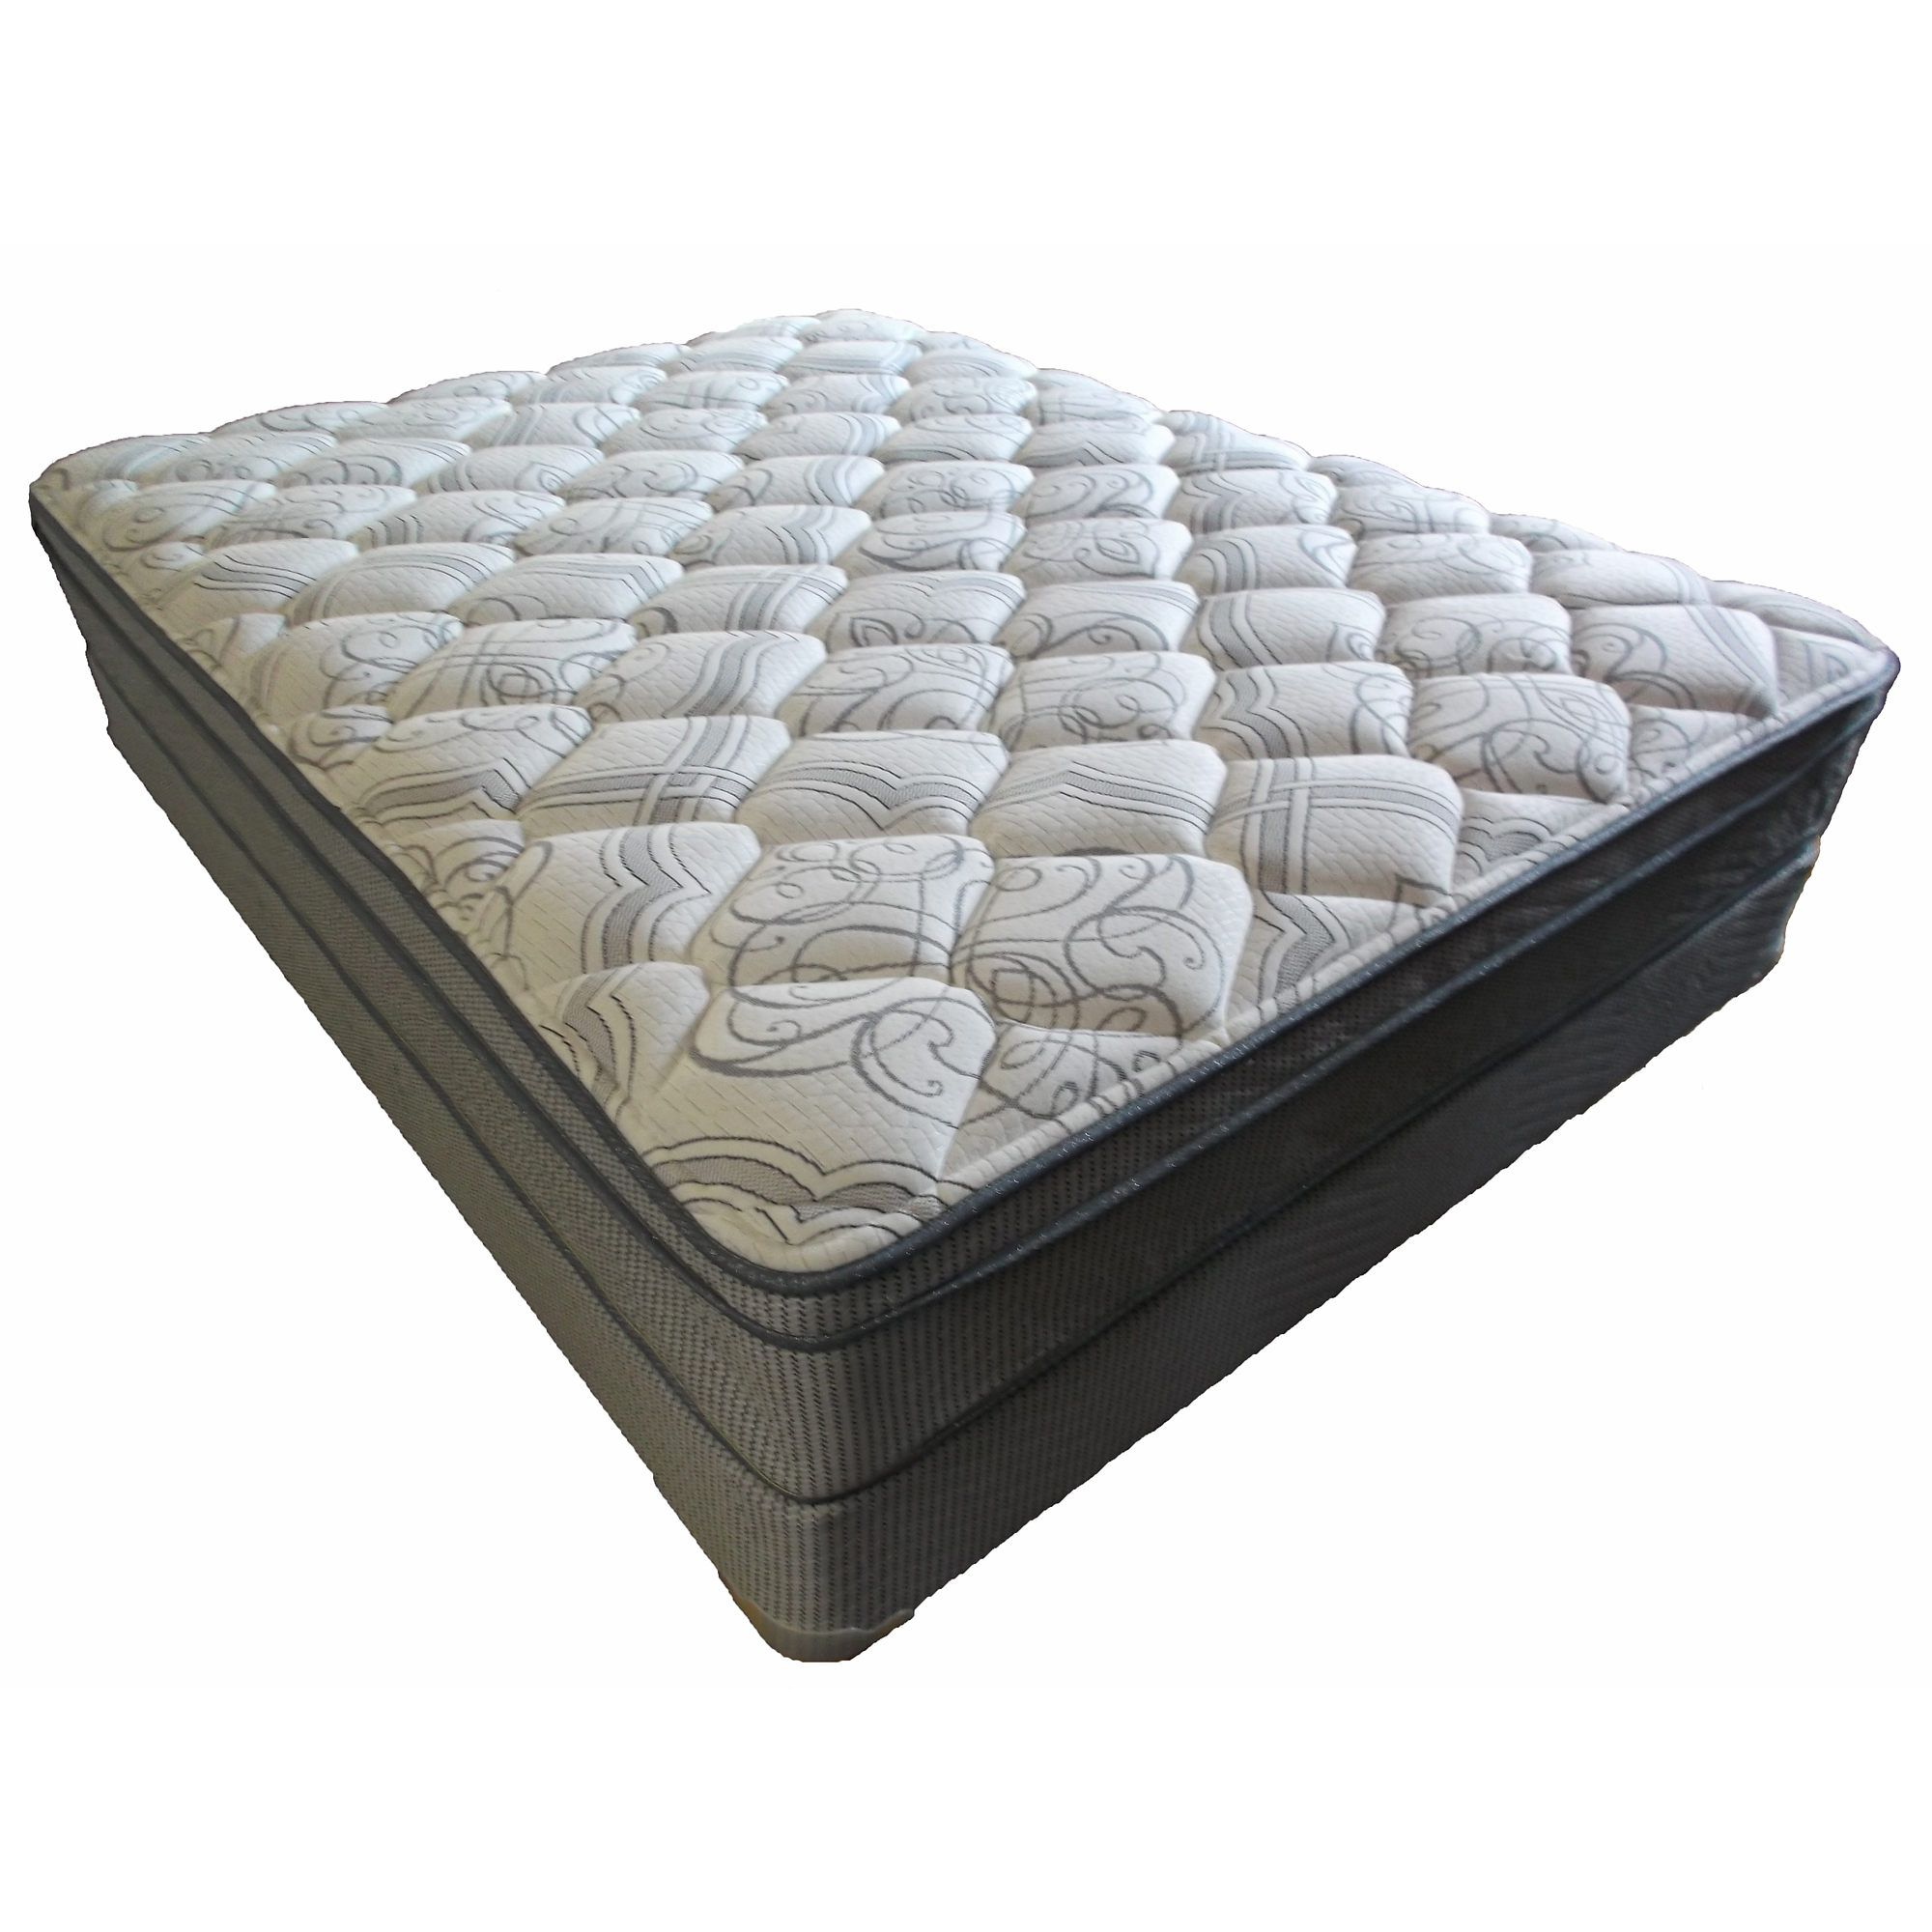 Mattress Queen Size Queen Size Bed Mattress Set P Nongzico